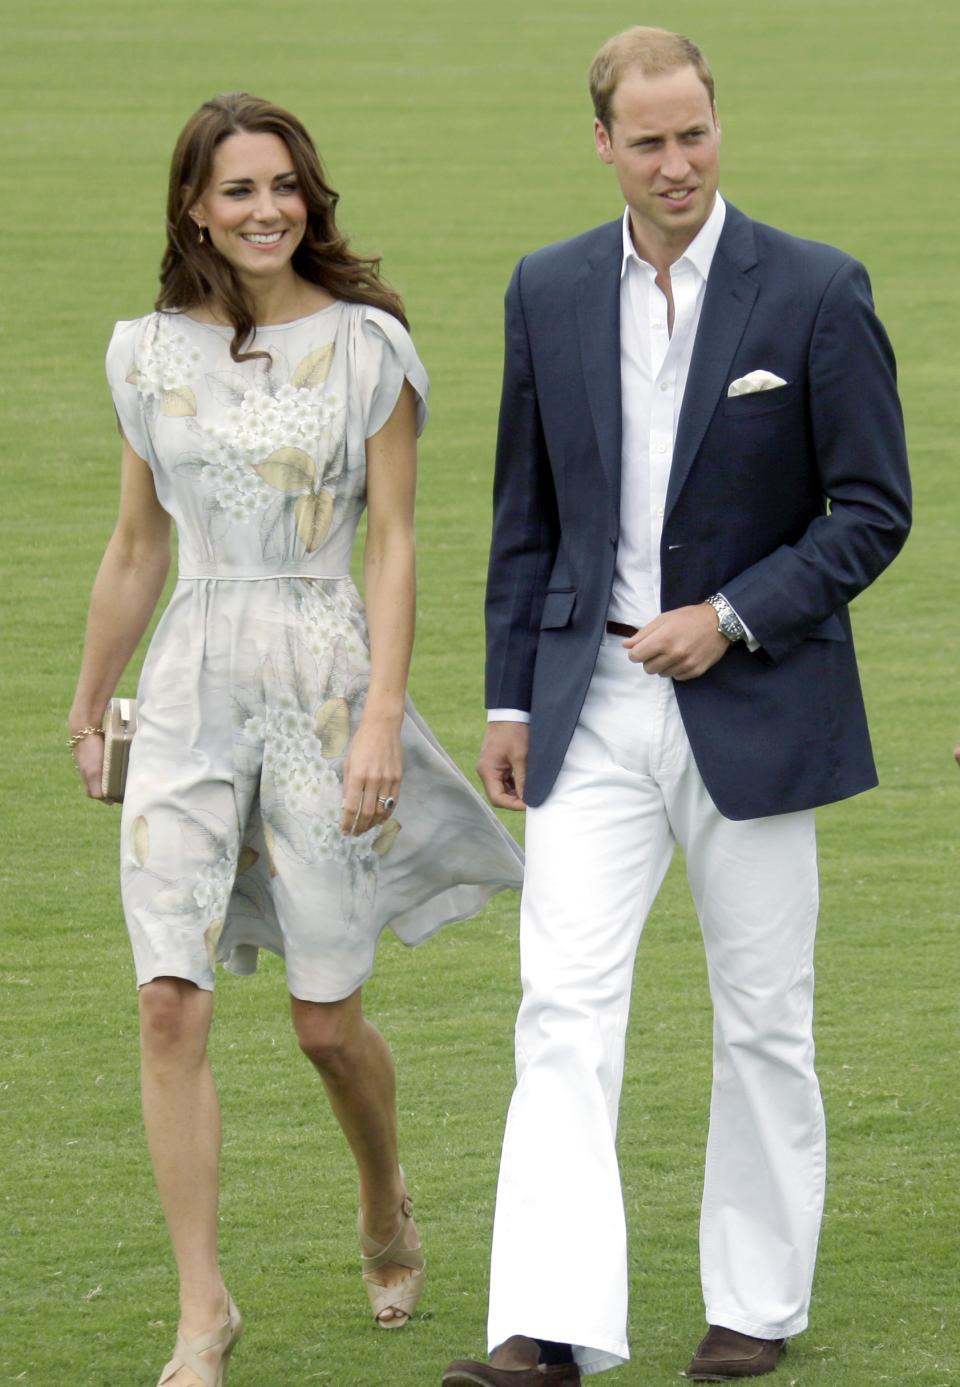 Prince William and Kate, the Duke and Duchess of Cambridge, arrive at a charity polo match at the Santa Barbara Polo & Racquet Club in Carpinteria, Calif., Saturday, July 9, 2011.  The event is held in support of The American Friends of The Foundation of Prince William and Prince Harry.  (AP Photo/Reed Saxon)